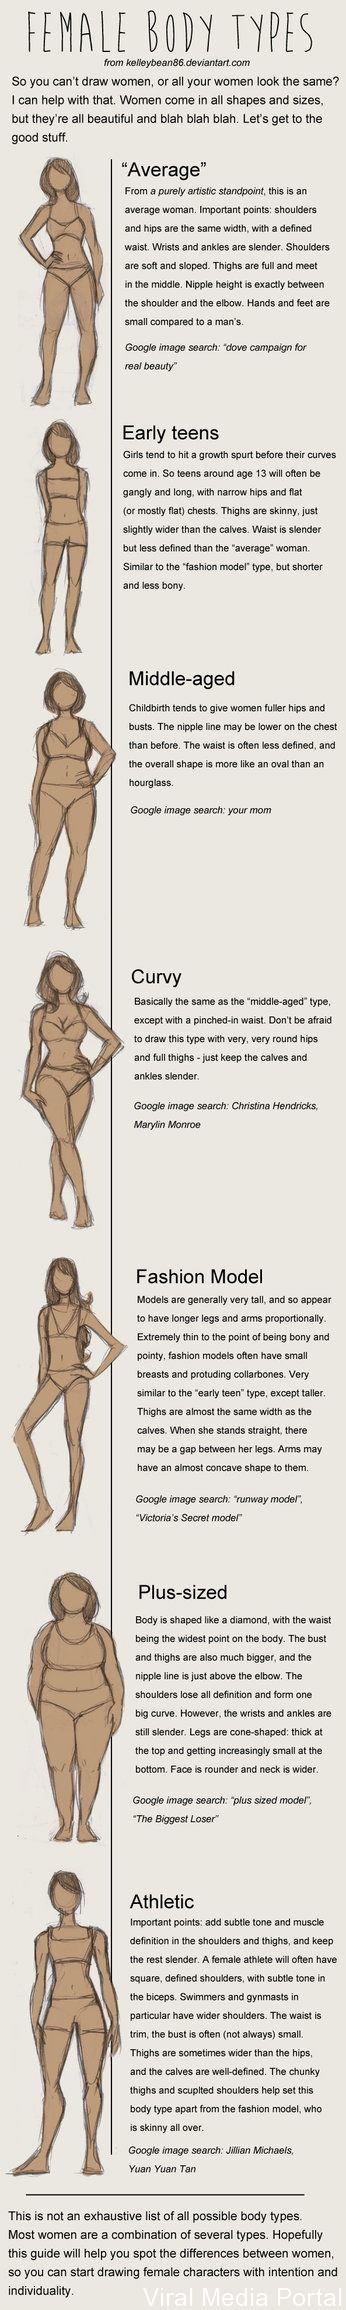 Female Body Types | drawing references | Pinterest | Female body ...